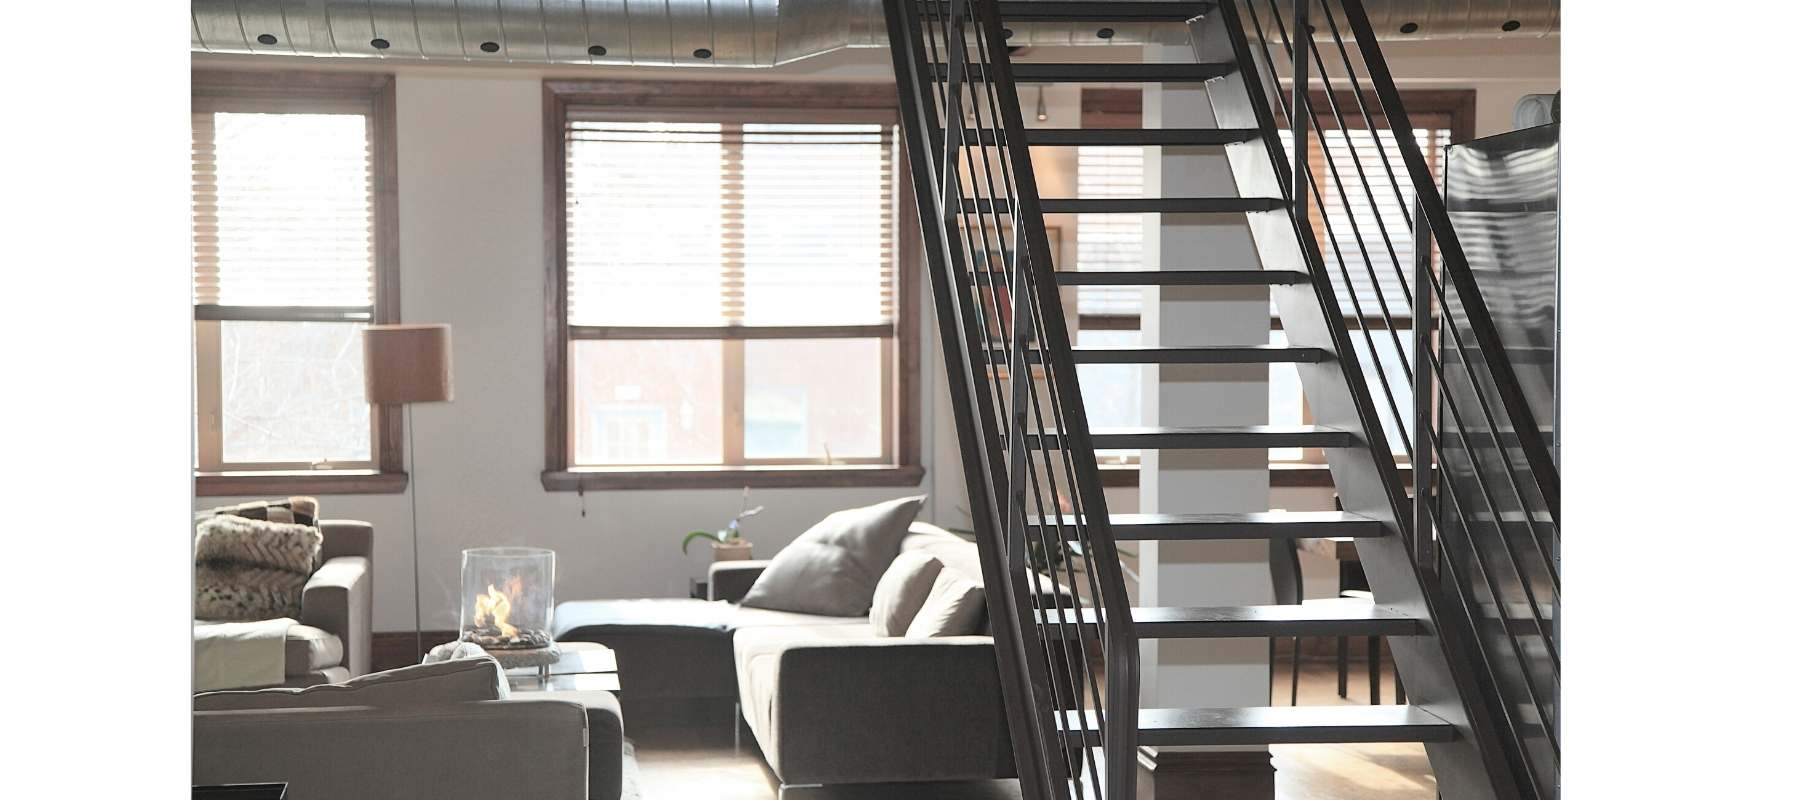 Loft style apartment with metal stairs and large windows